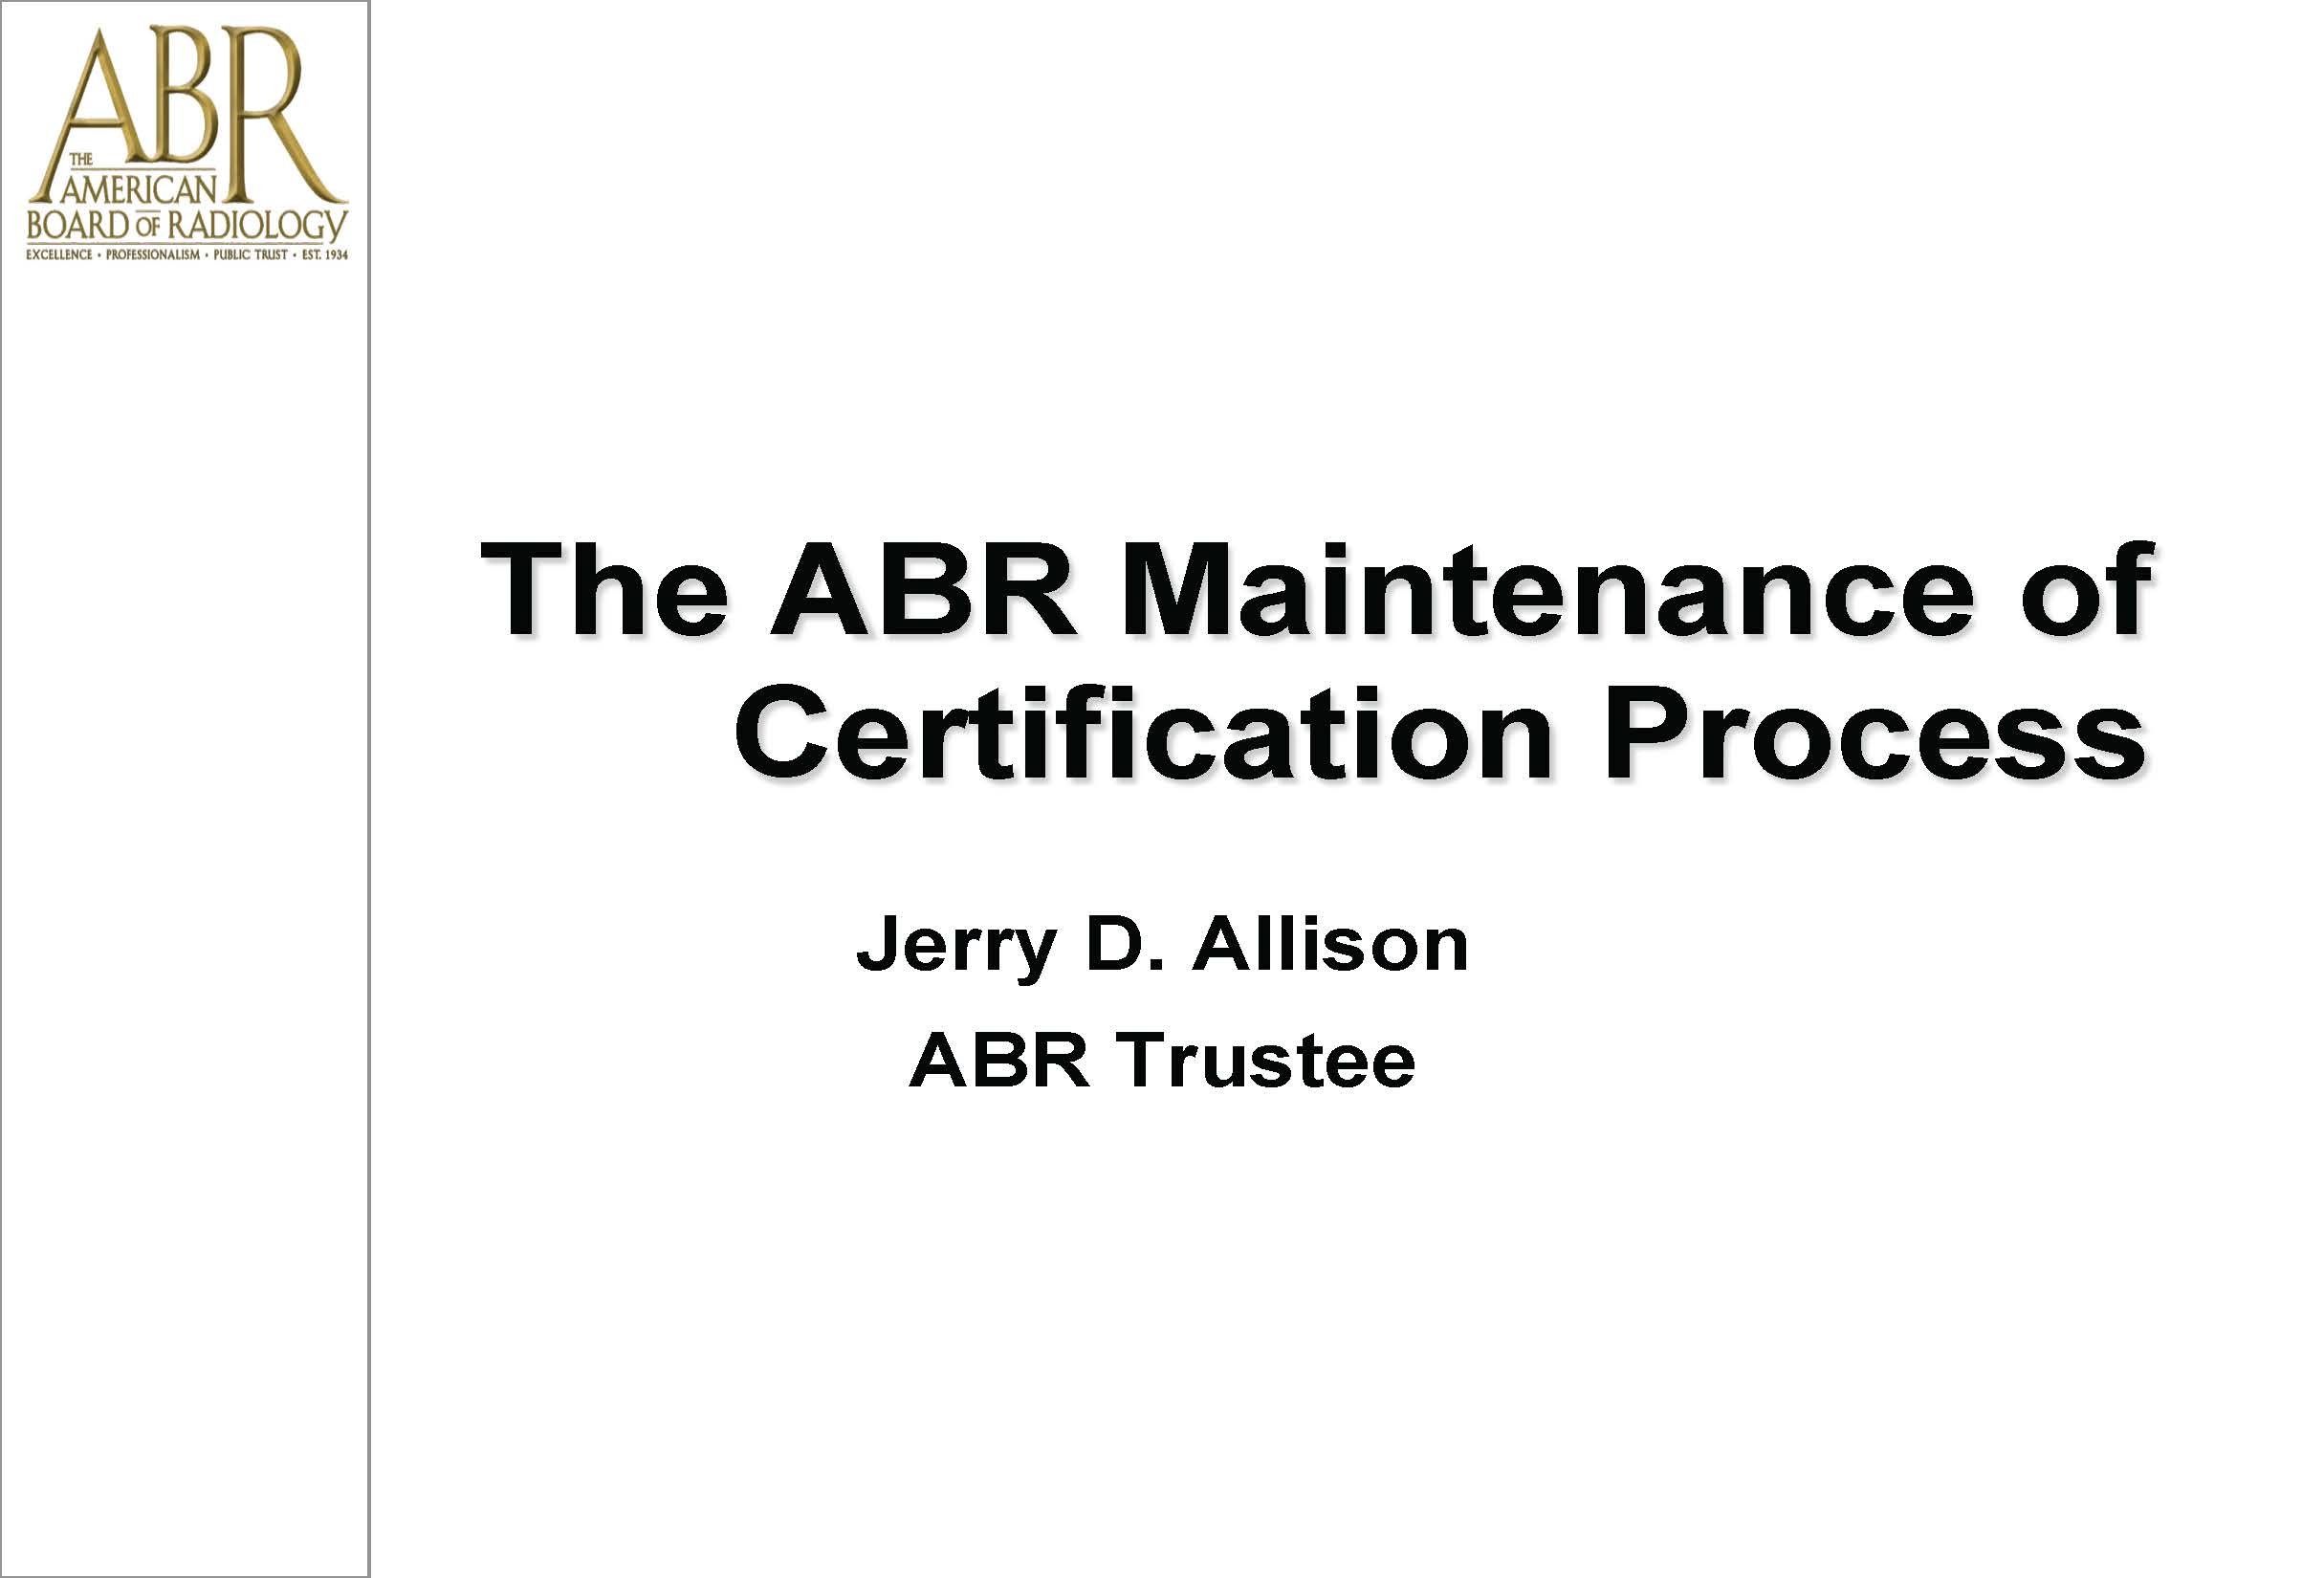 Aapm Vl The American Board Of Radiology Maintenance Of Certification